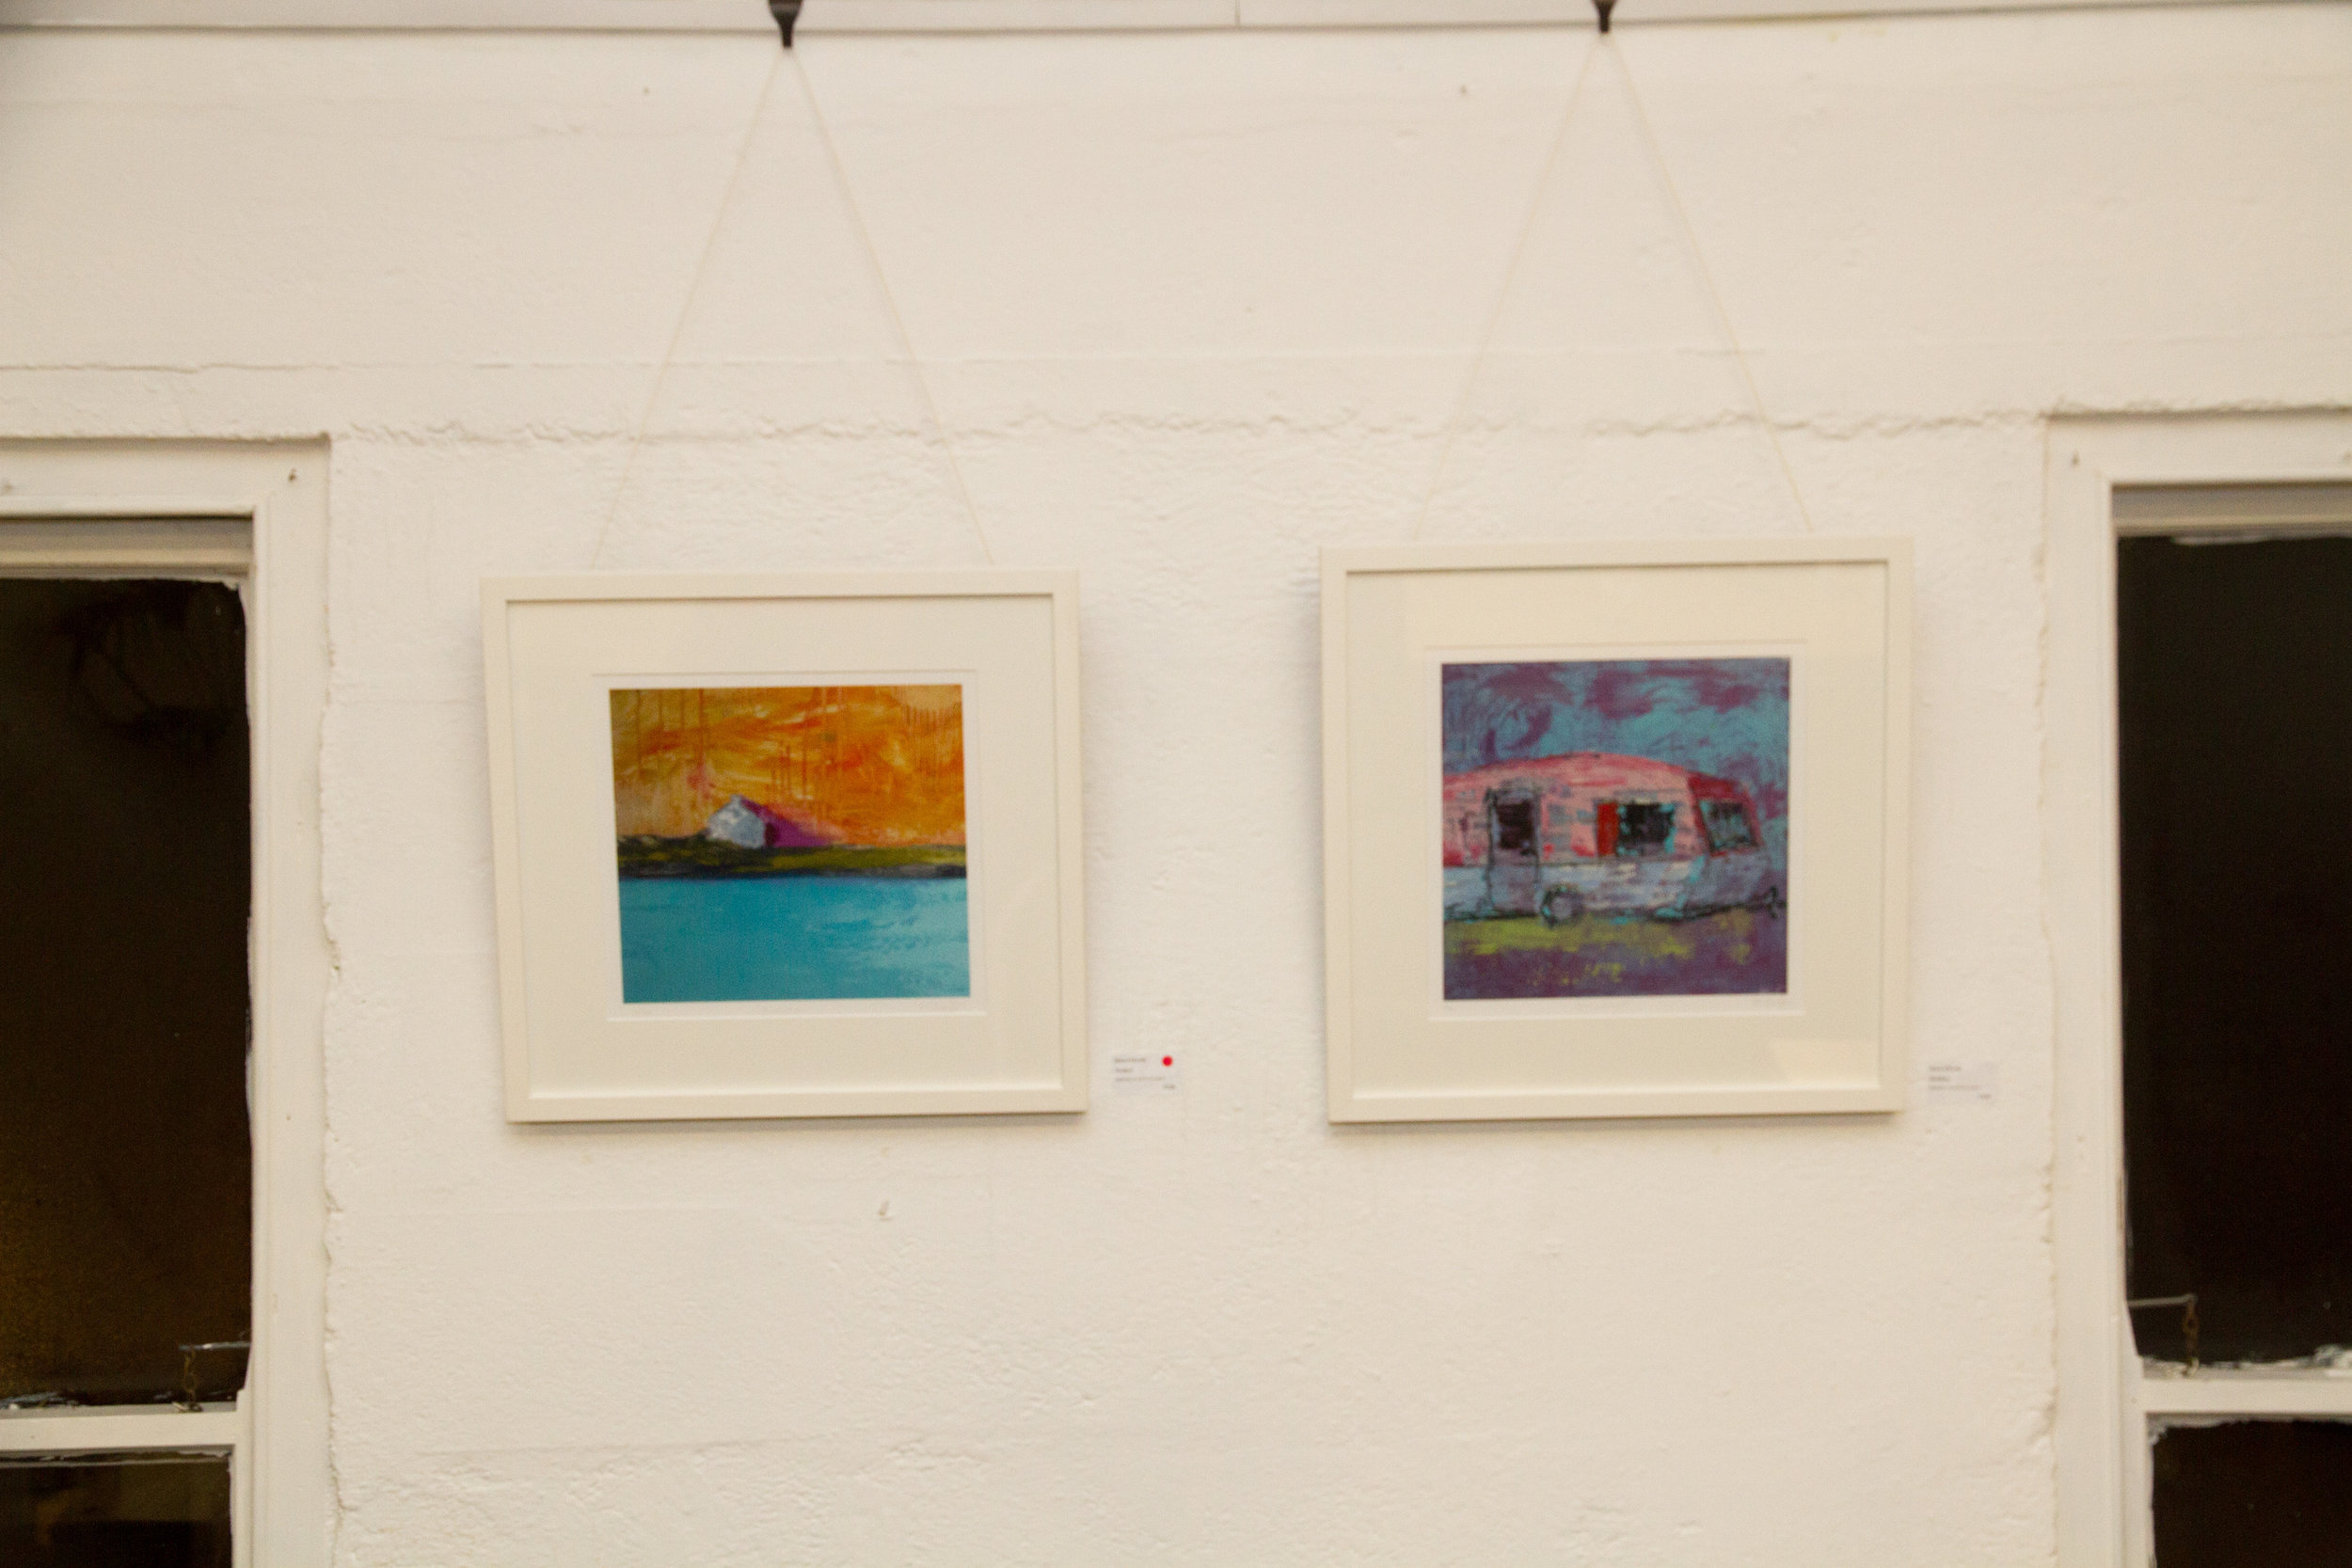 Archival Prints of Helen's paintings (framed) at €220 each.